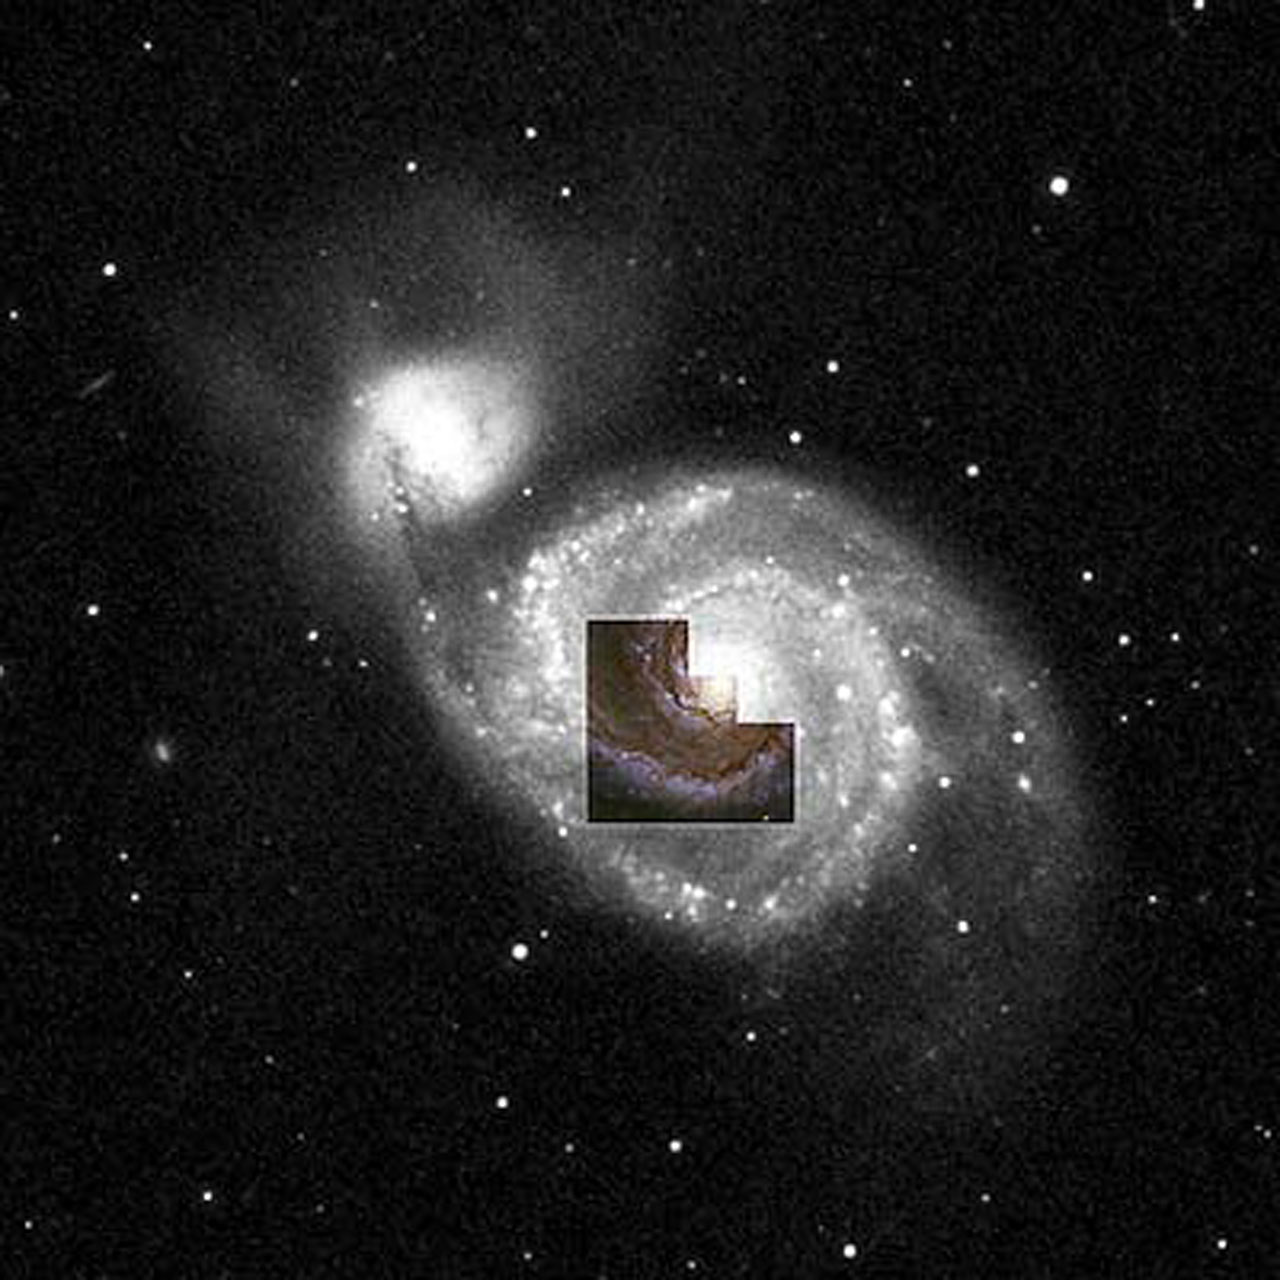 whirlpool galaxy hubble nasa center picture - photo #15